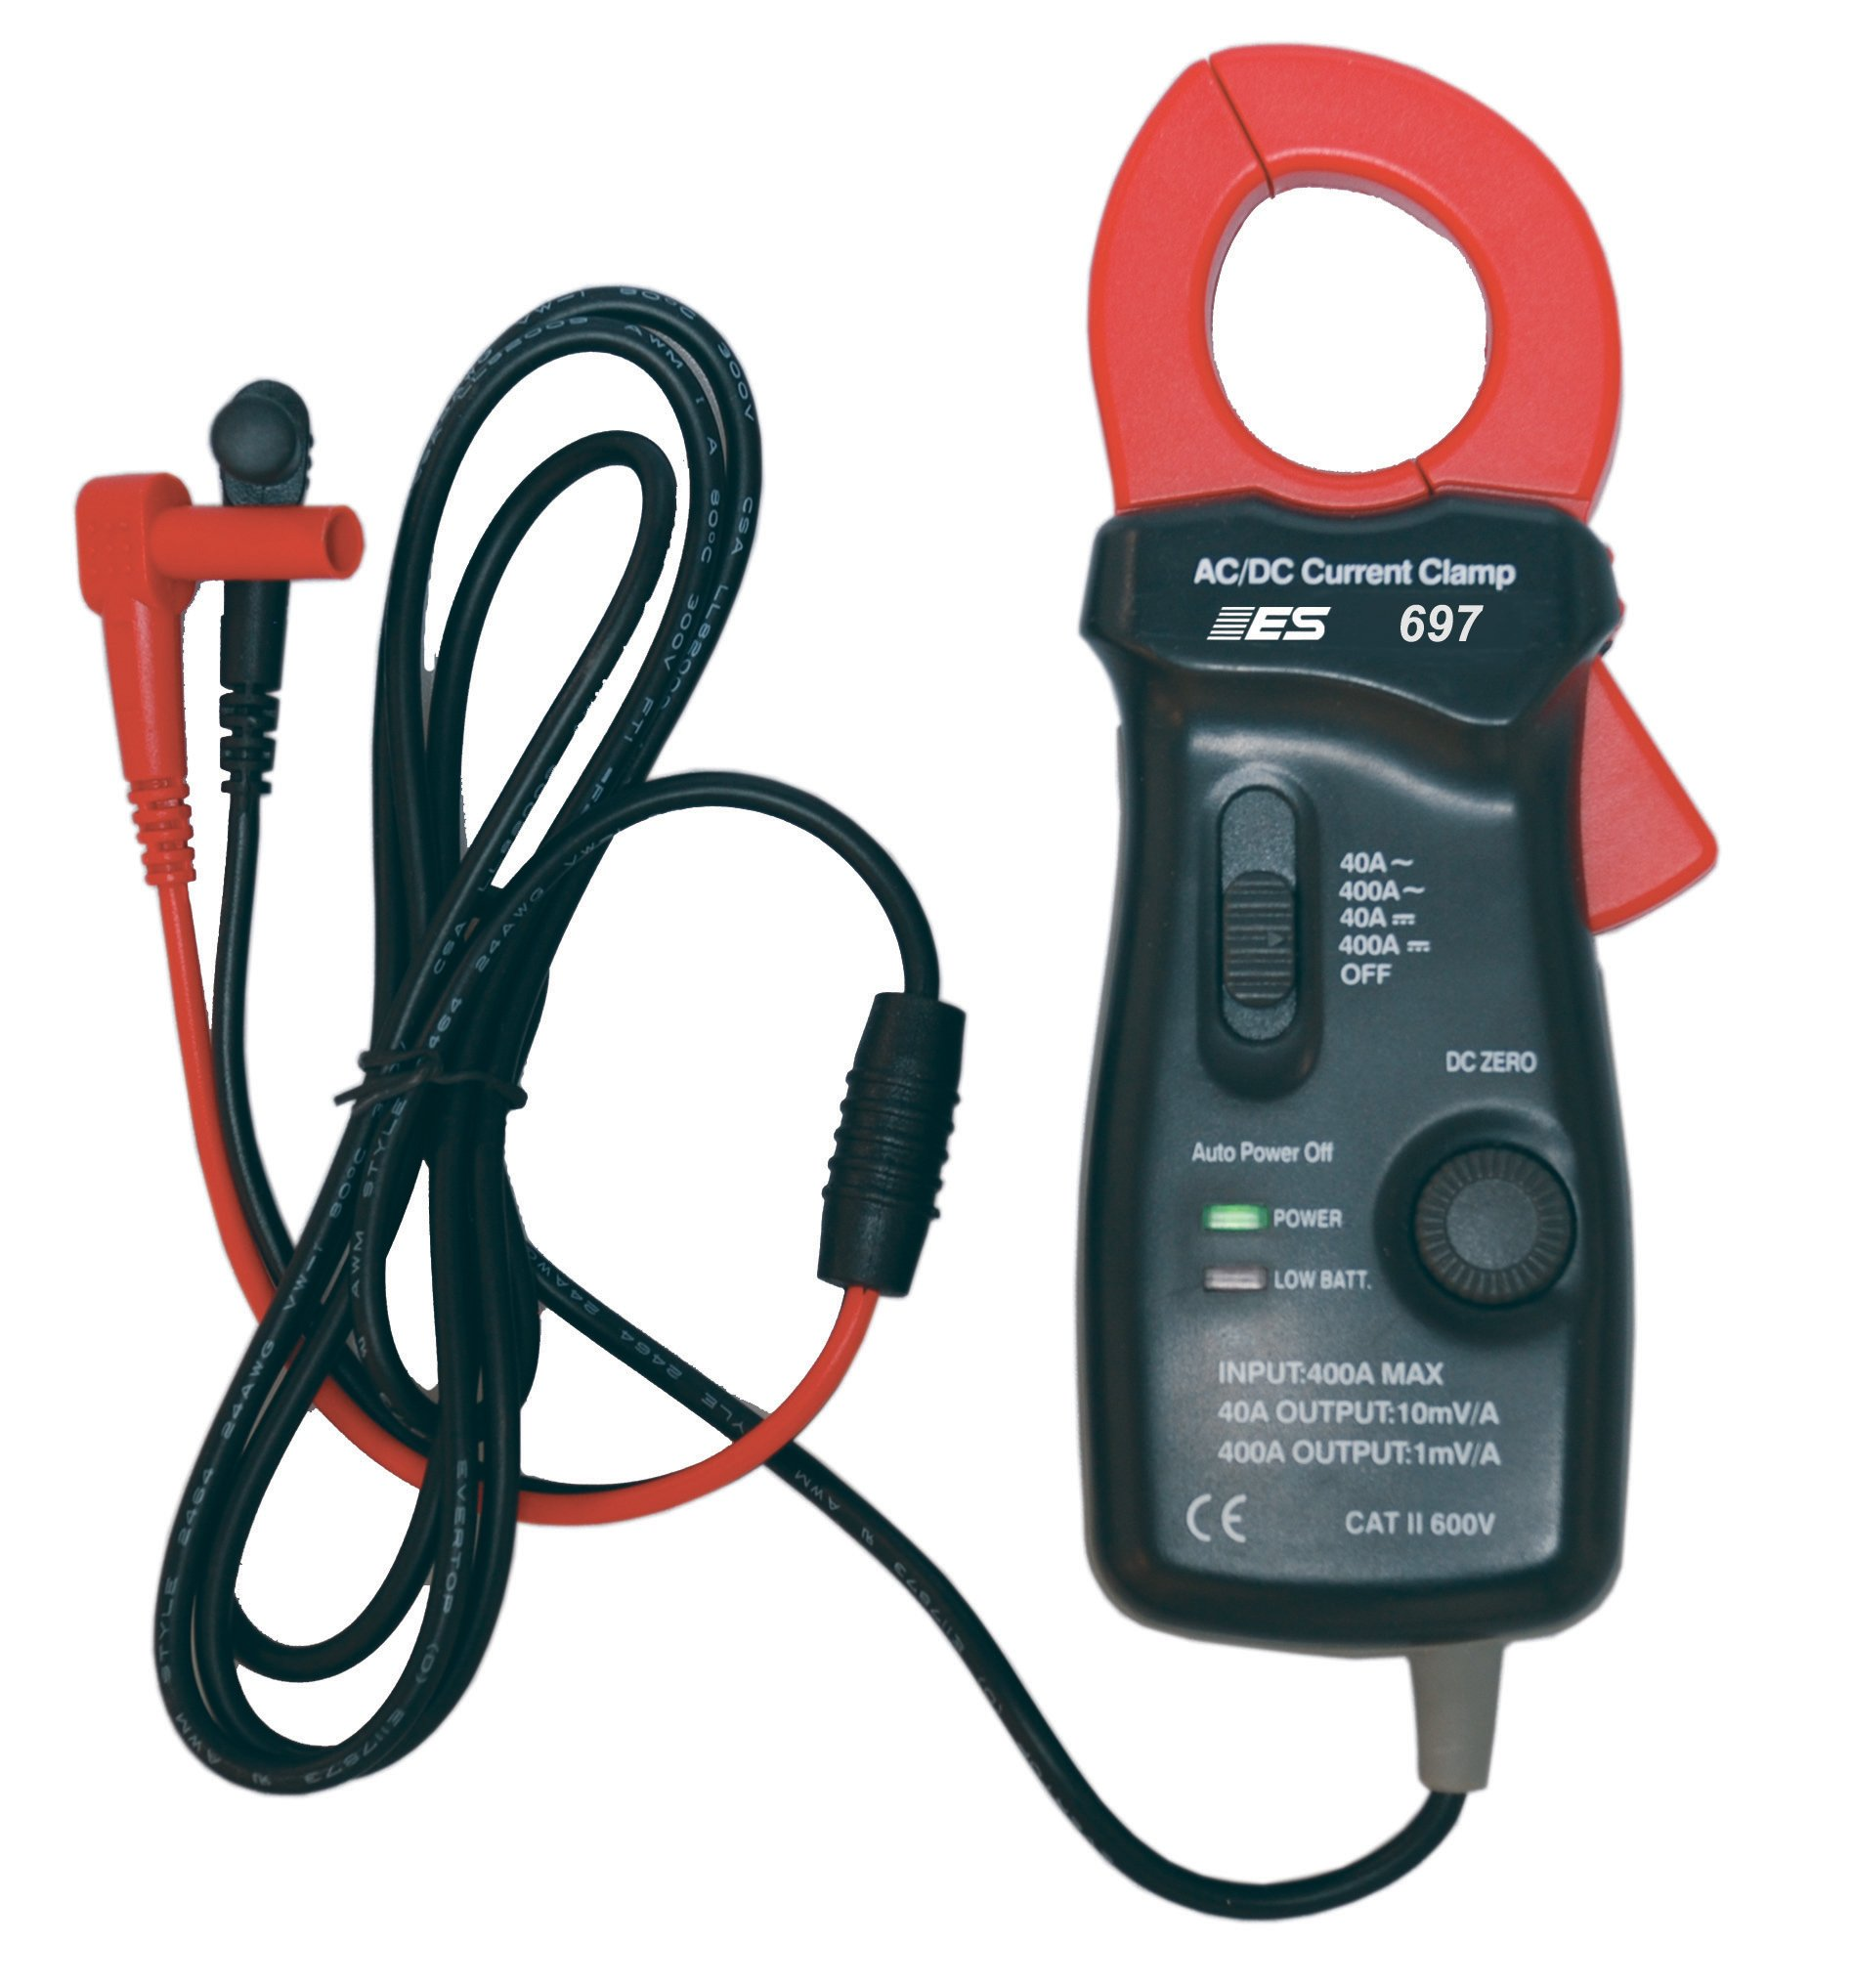 Electronic Specialties 697 400 Amp DC/AC Current Probe by Electronic Specialties (Image #1)